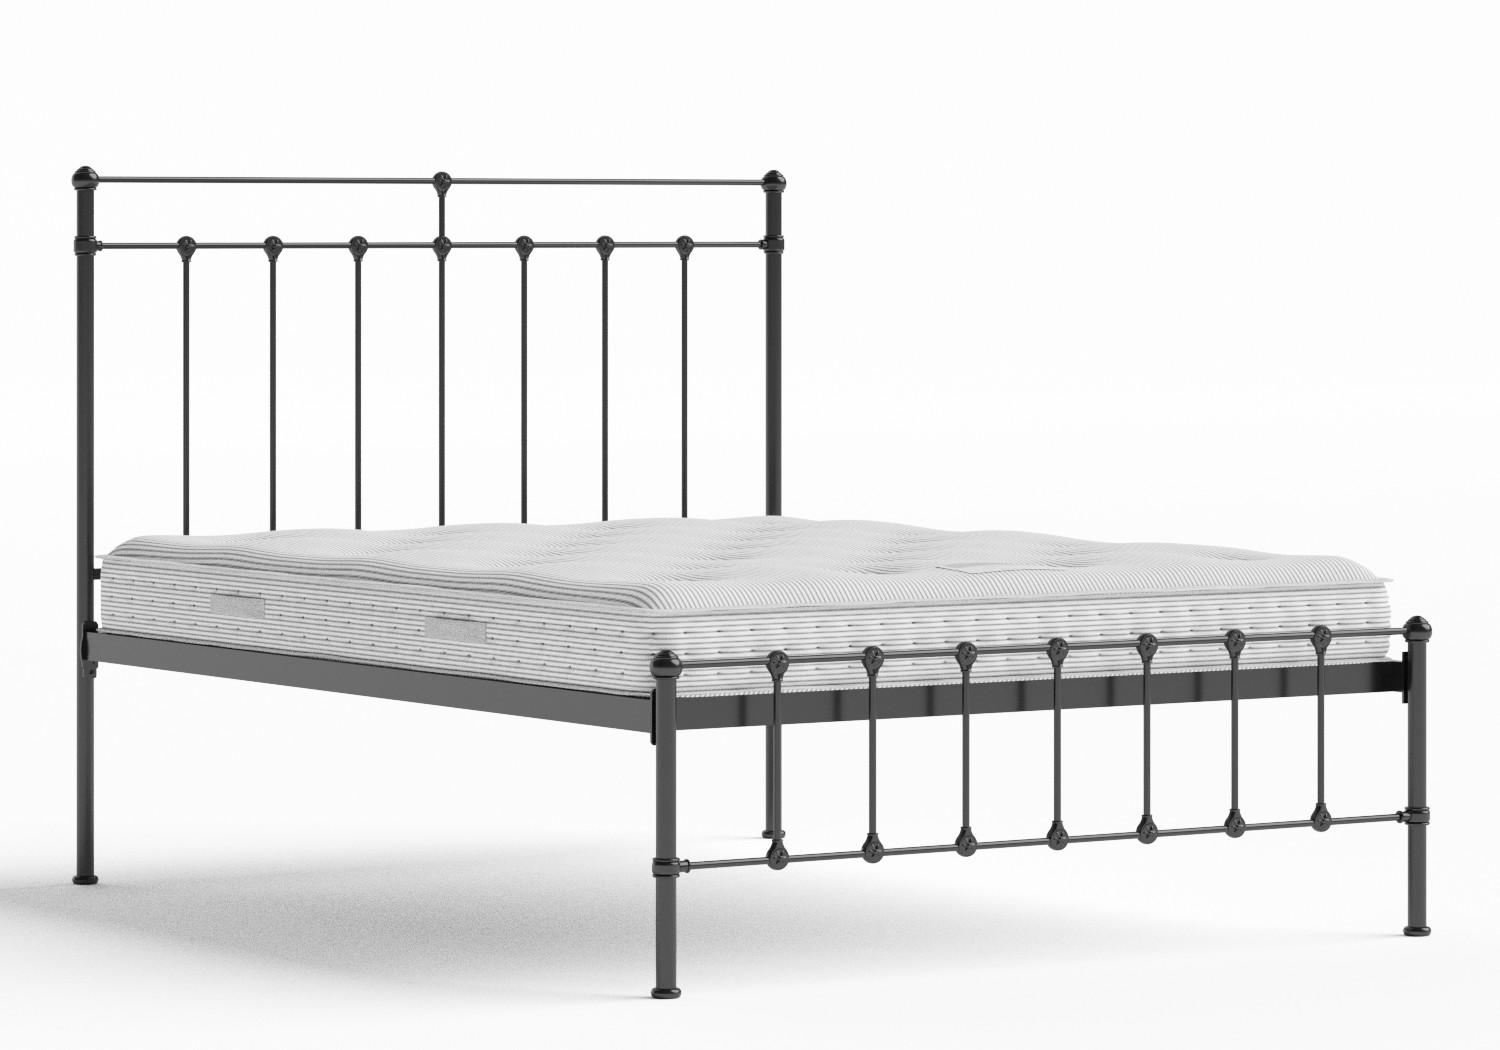 Ashley Iron/Metal Bed in Satin Black shown with Juno 1 mattress